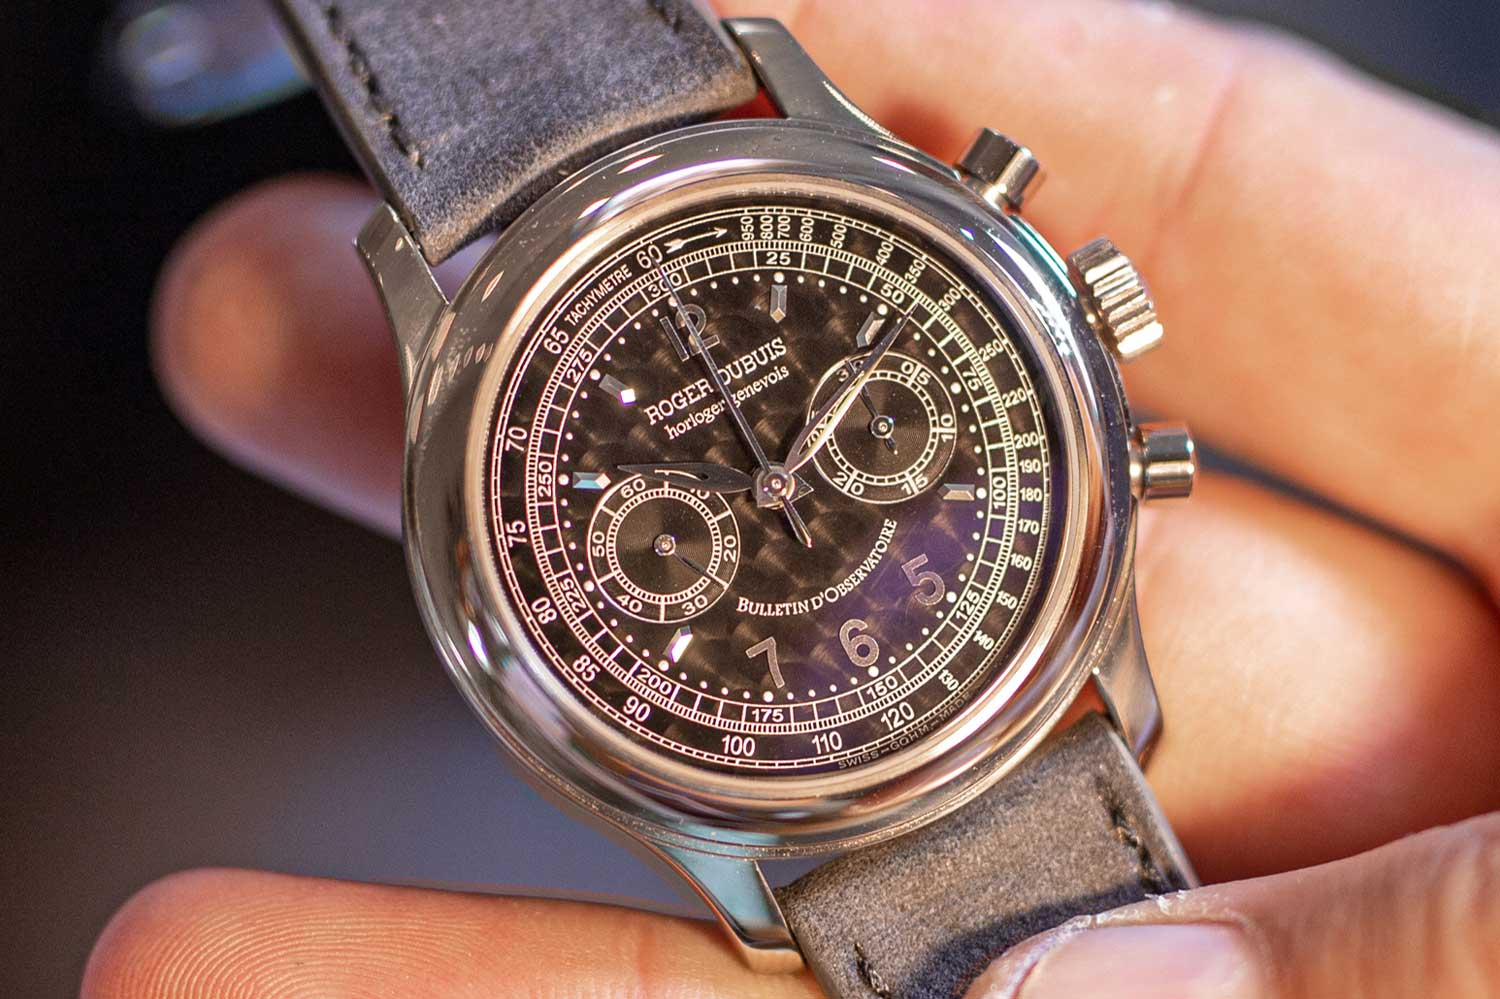 A special Roger Dubuis H40 Hommage with a perlage dial coated in black (Image: mrwatchley.com)